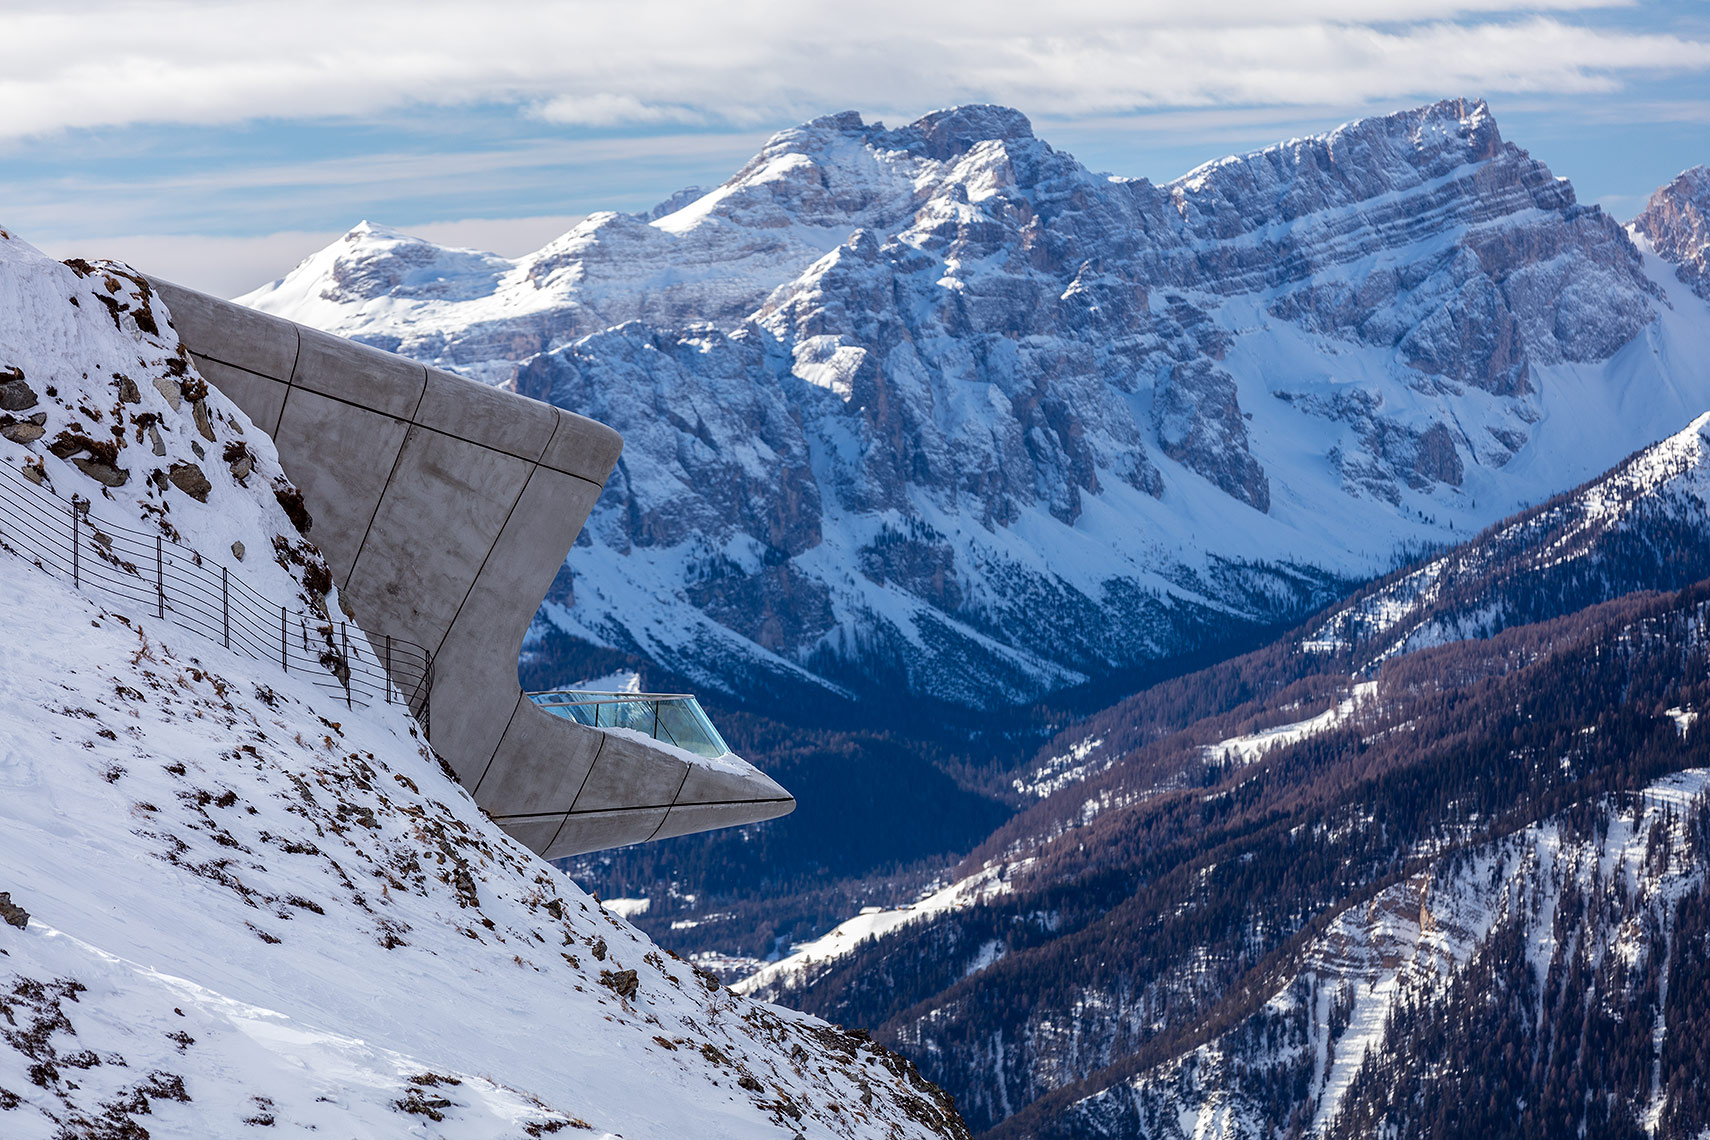 Observation deck of Messner museum, Peter A. Sellar Architectural Photographer